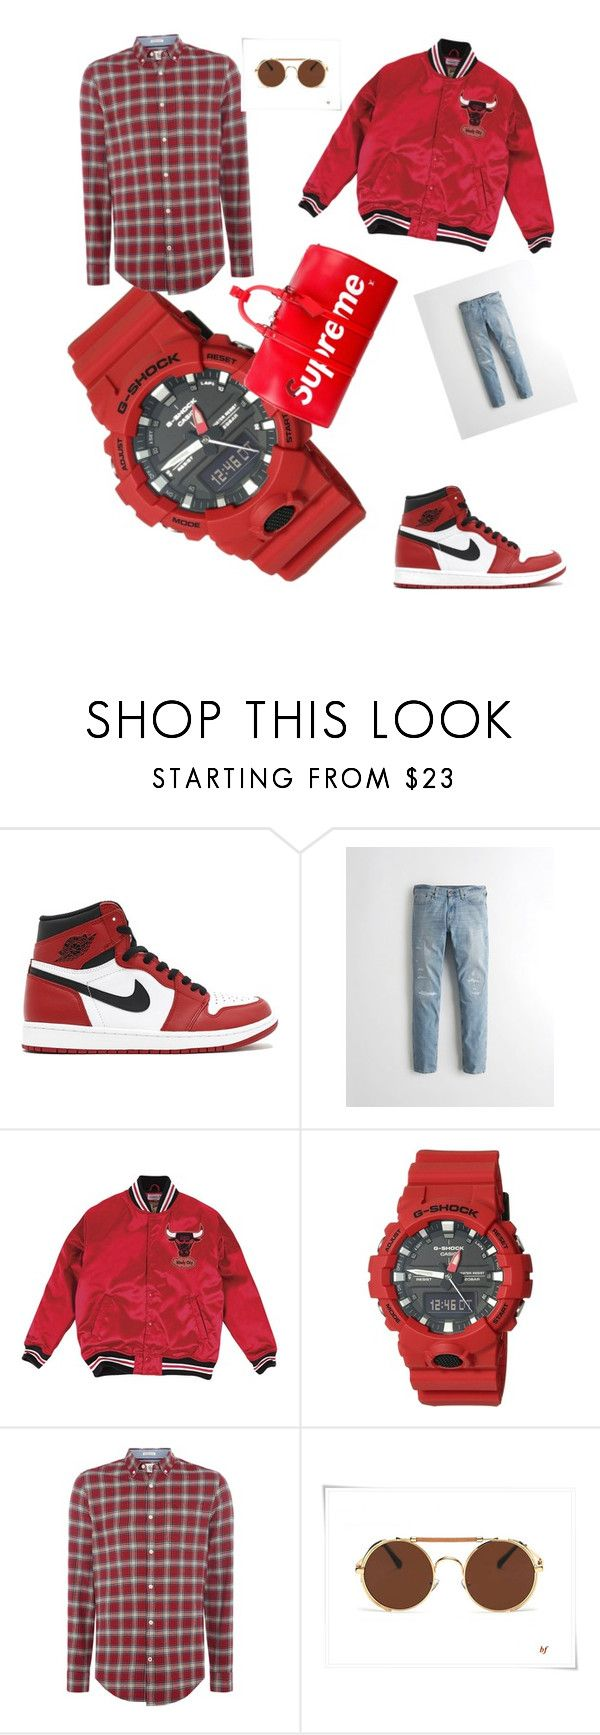 """go to court😎😎"" by peitl-pas ❤ liked on Polyvore featuring NIKE, Hollister Co., Mitchell & Ness, G-Shock, Original Penguin, Supreme, men's fashion and menswear"